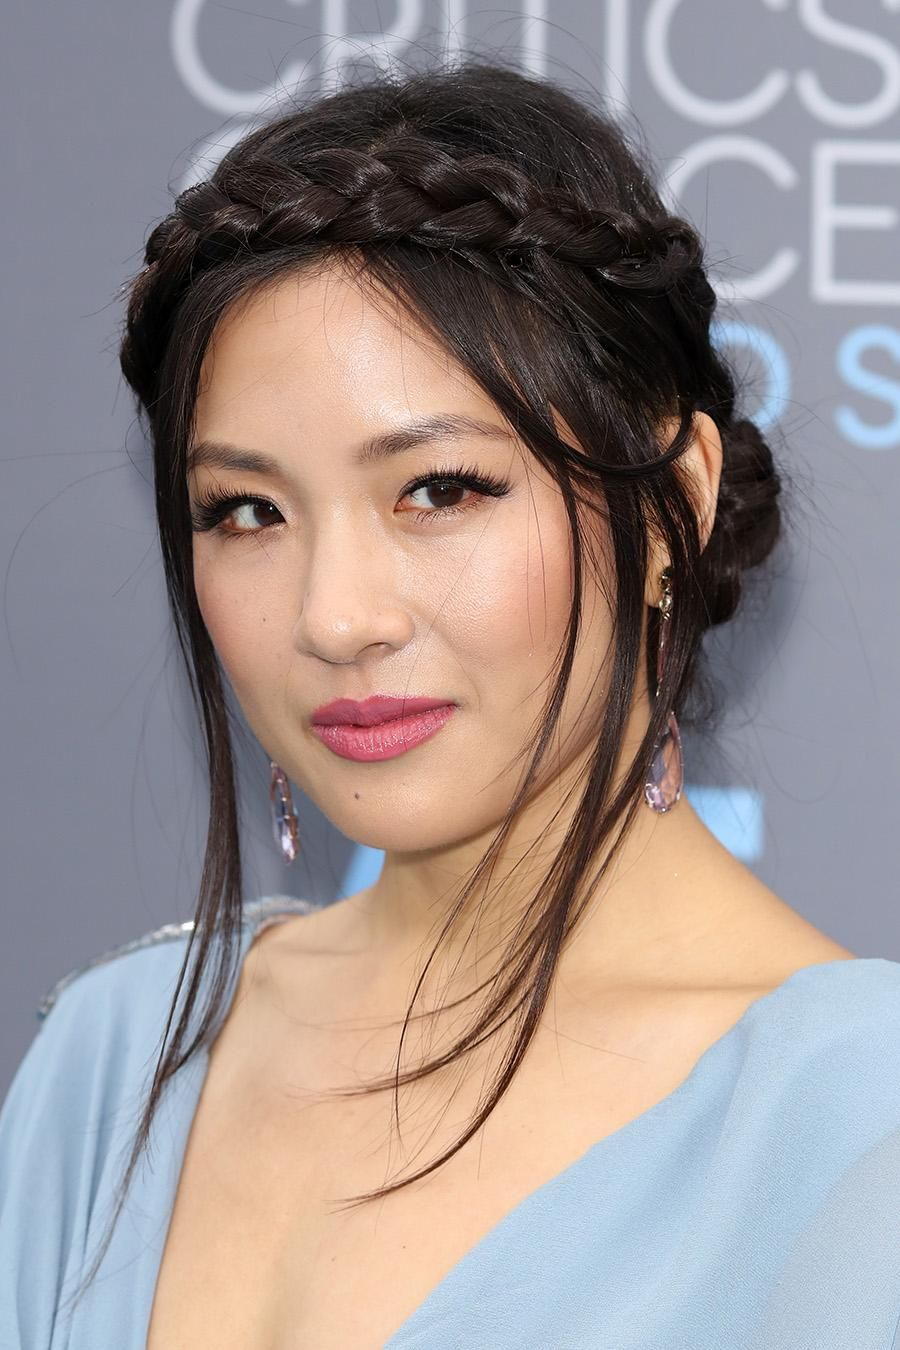 Constance Wu nailed the Grecian goddess look with her braid crowd, glossy pink lip color, and long, fluttery lashes. | Best Hair & Makeup Looks at the 2016 Critics Choice Awards